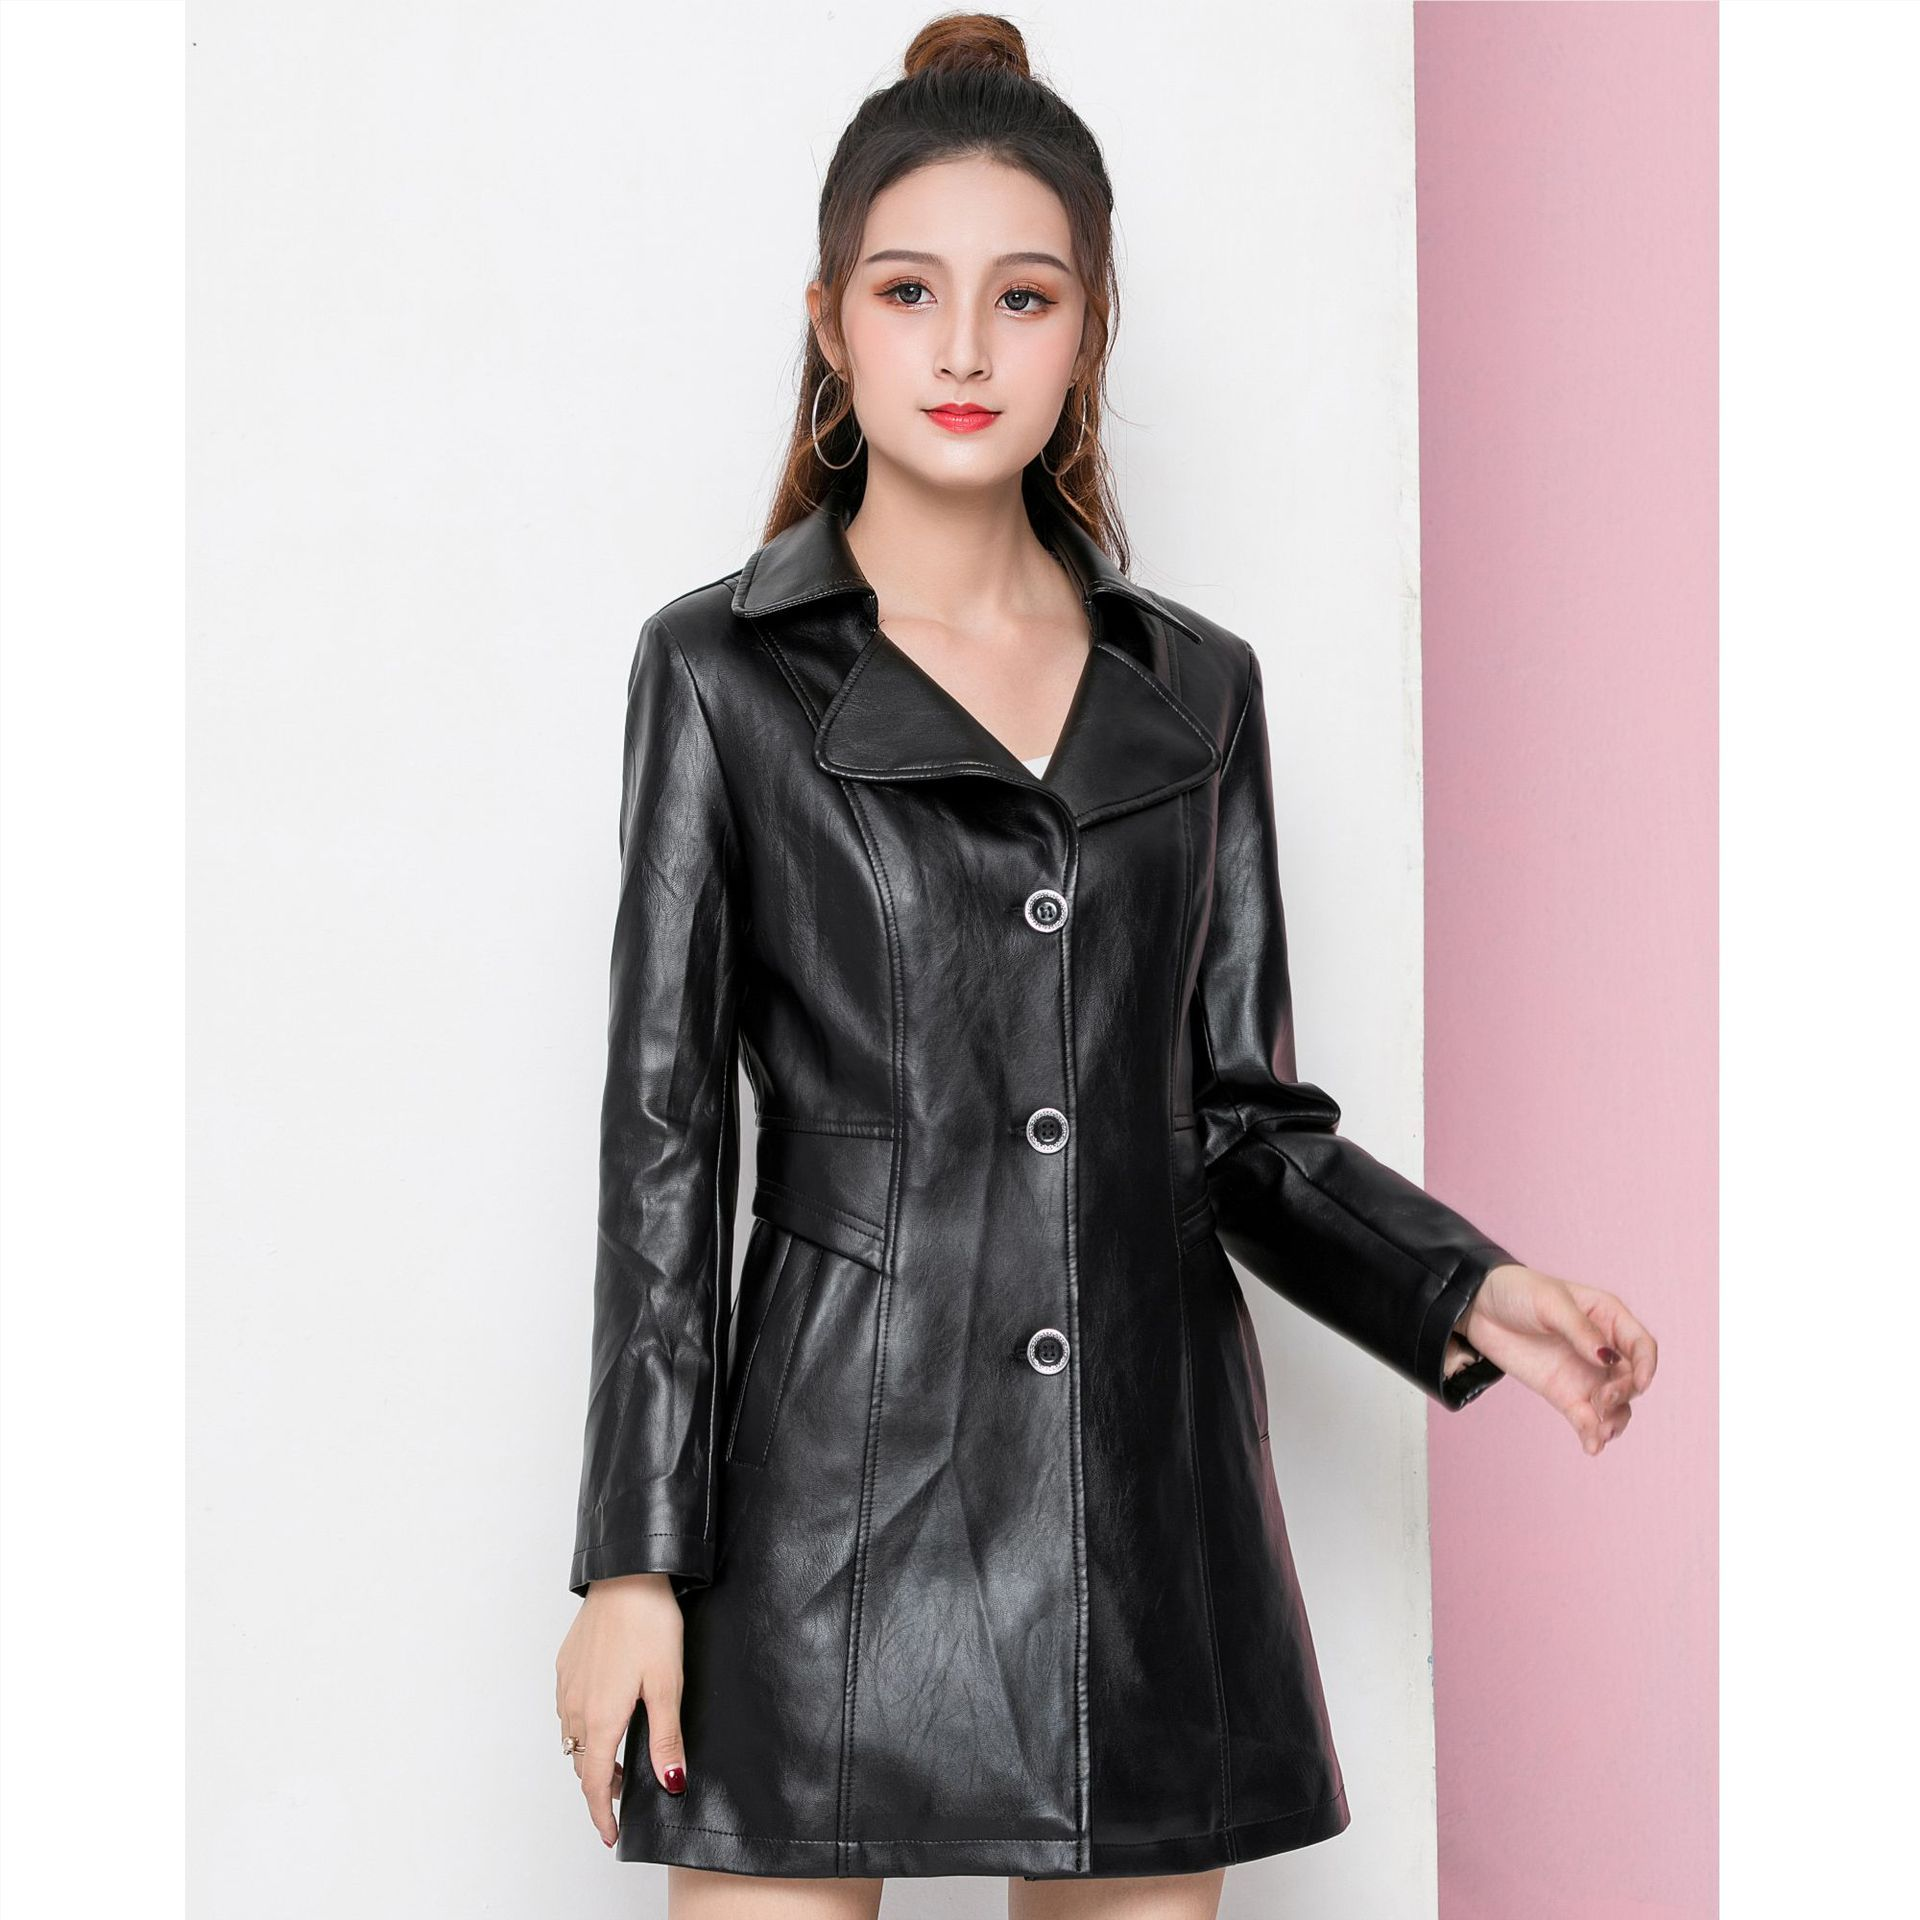 Temperament Korean Style Long Lapel Women's Leather Jacket